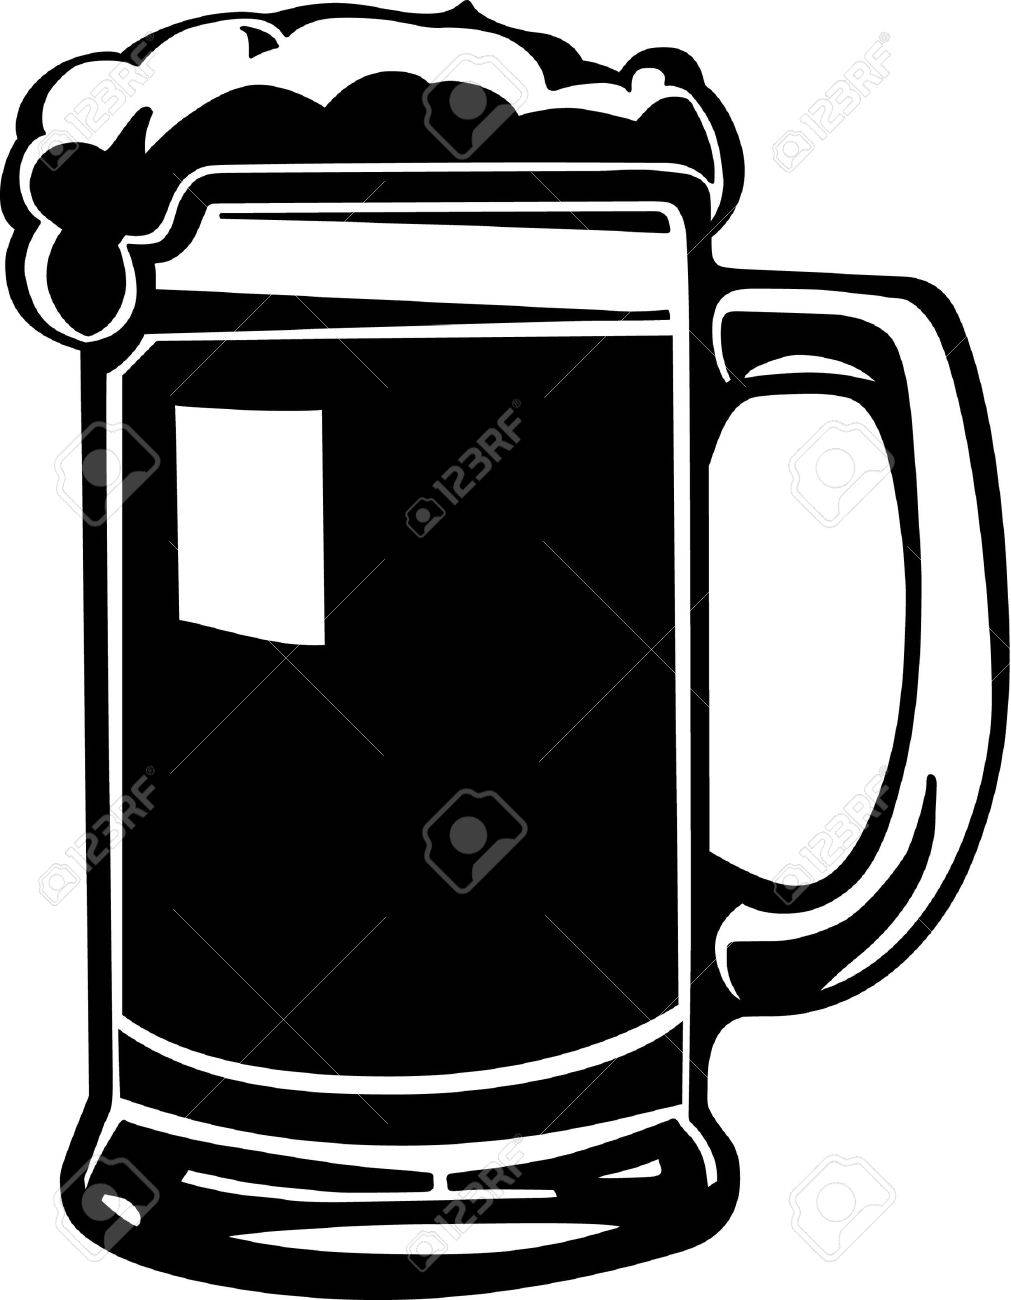 Beer mug clipart black and white 7 » Clipart Station.